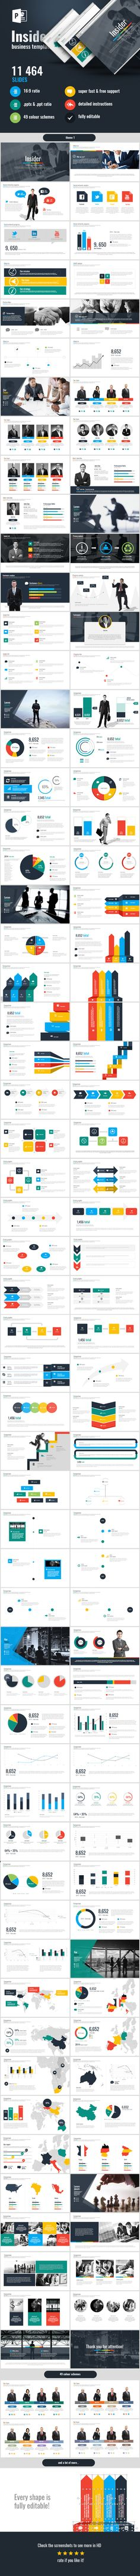 Digital art powerpoint presentation template template digital insider powerpoint presentation template toneelgroepblik Images